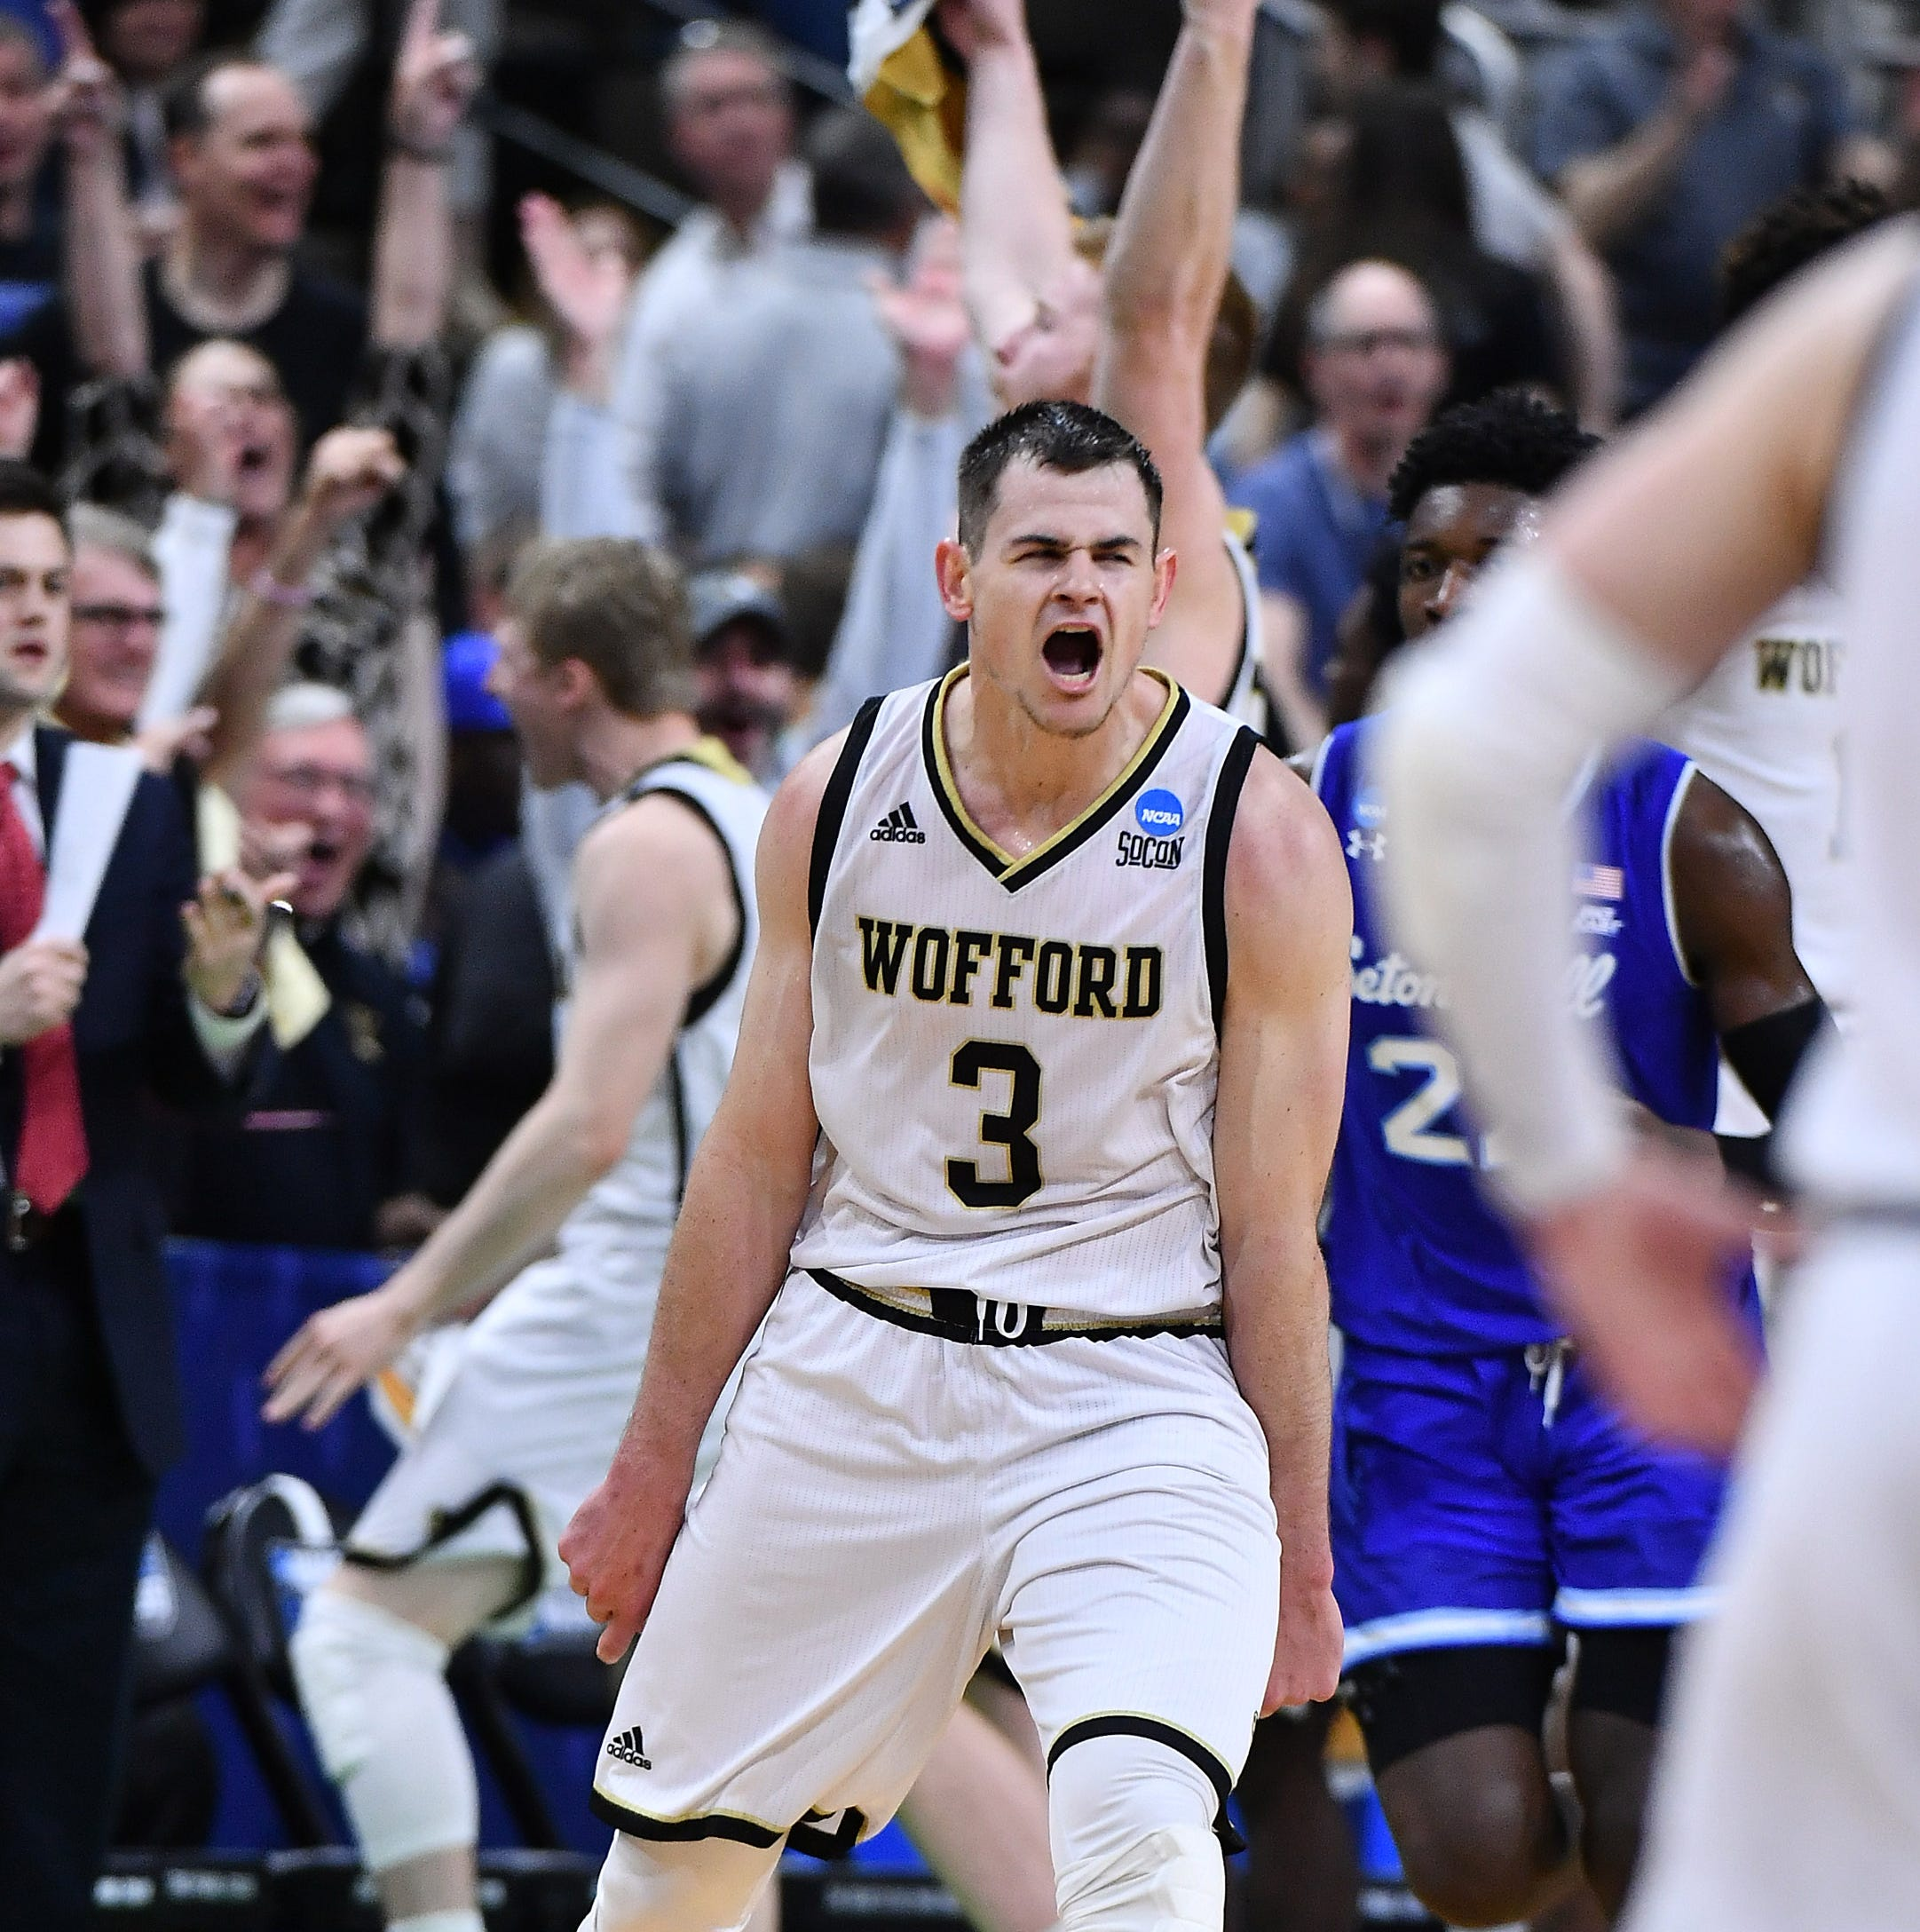 March Madness: Fletcher Magee sends Wofford past Seton Hall in NCAA Tournament's 1st round